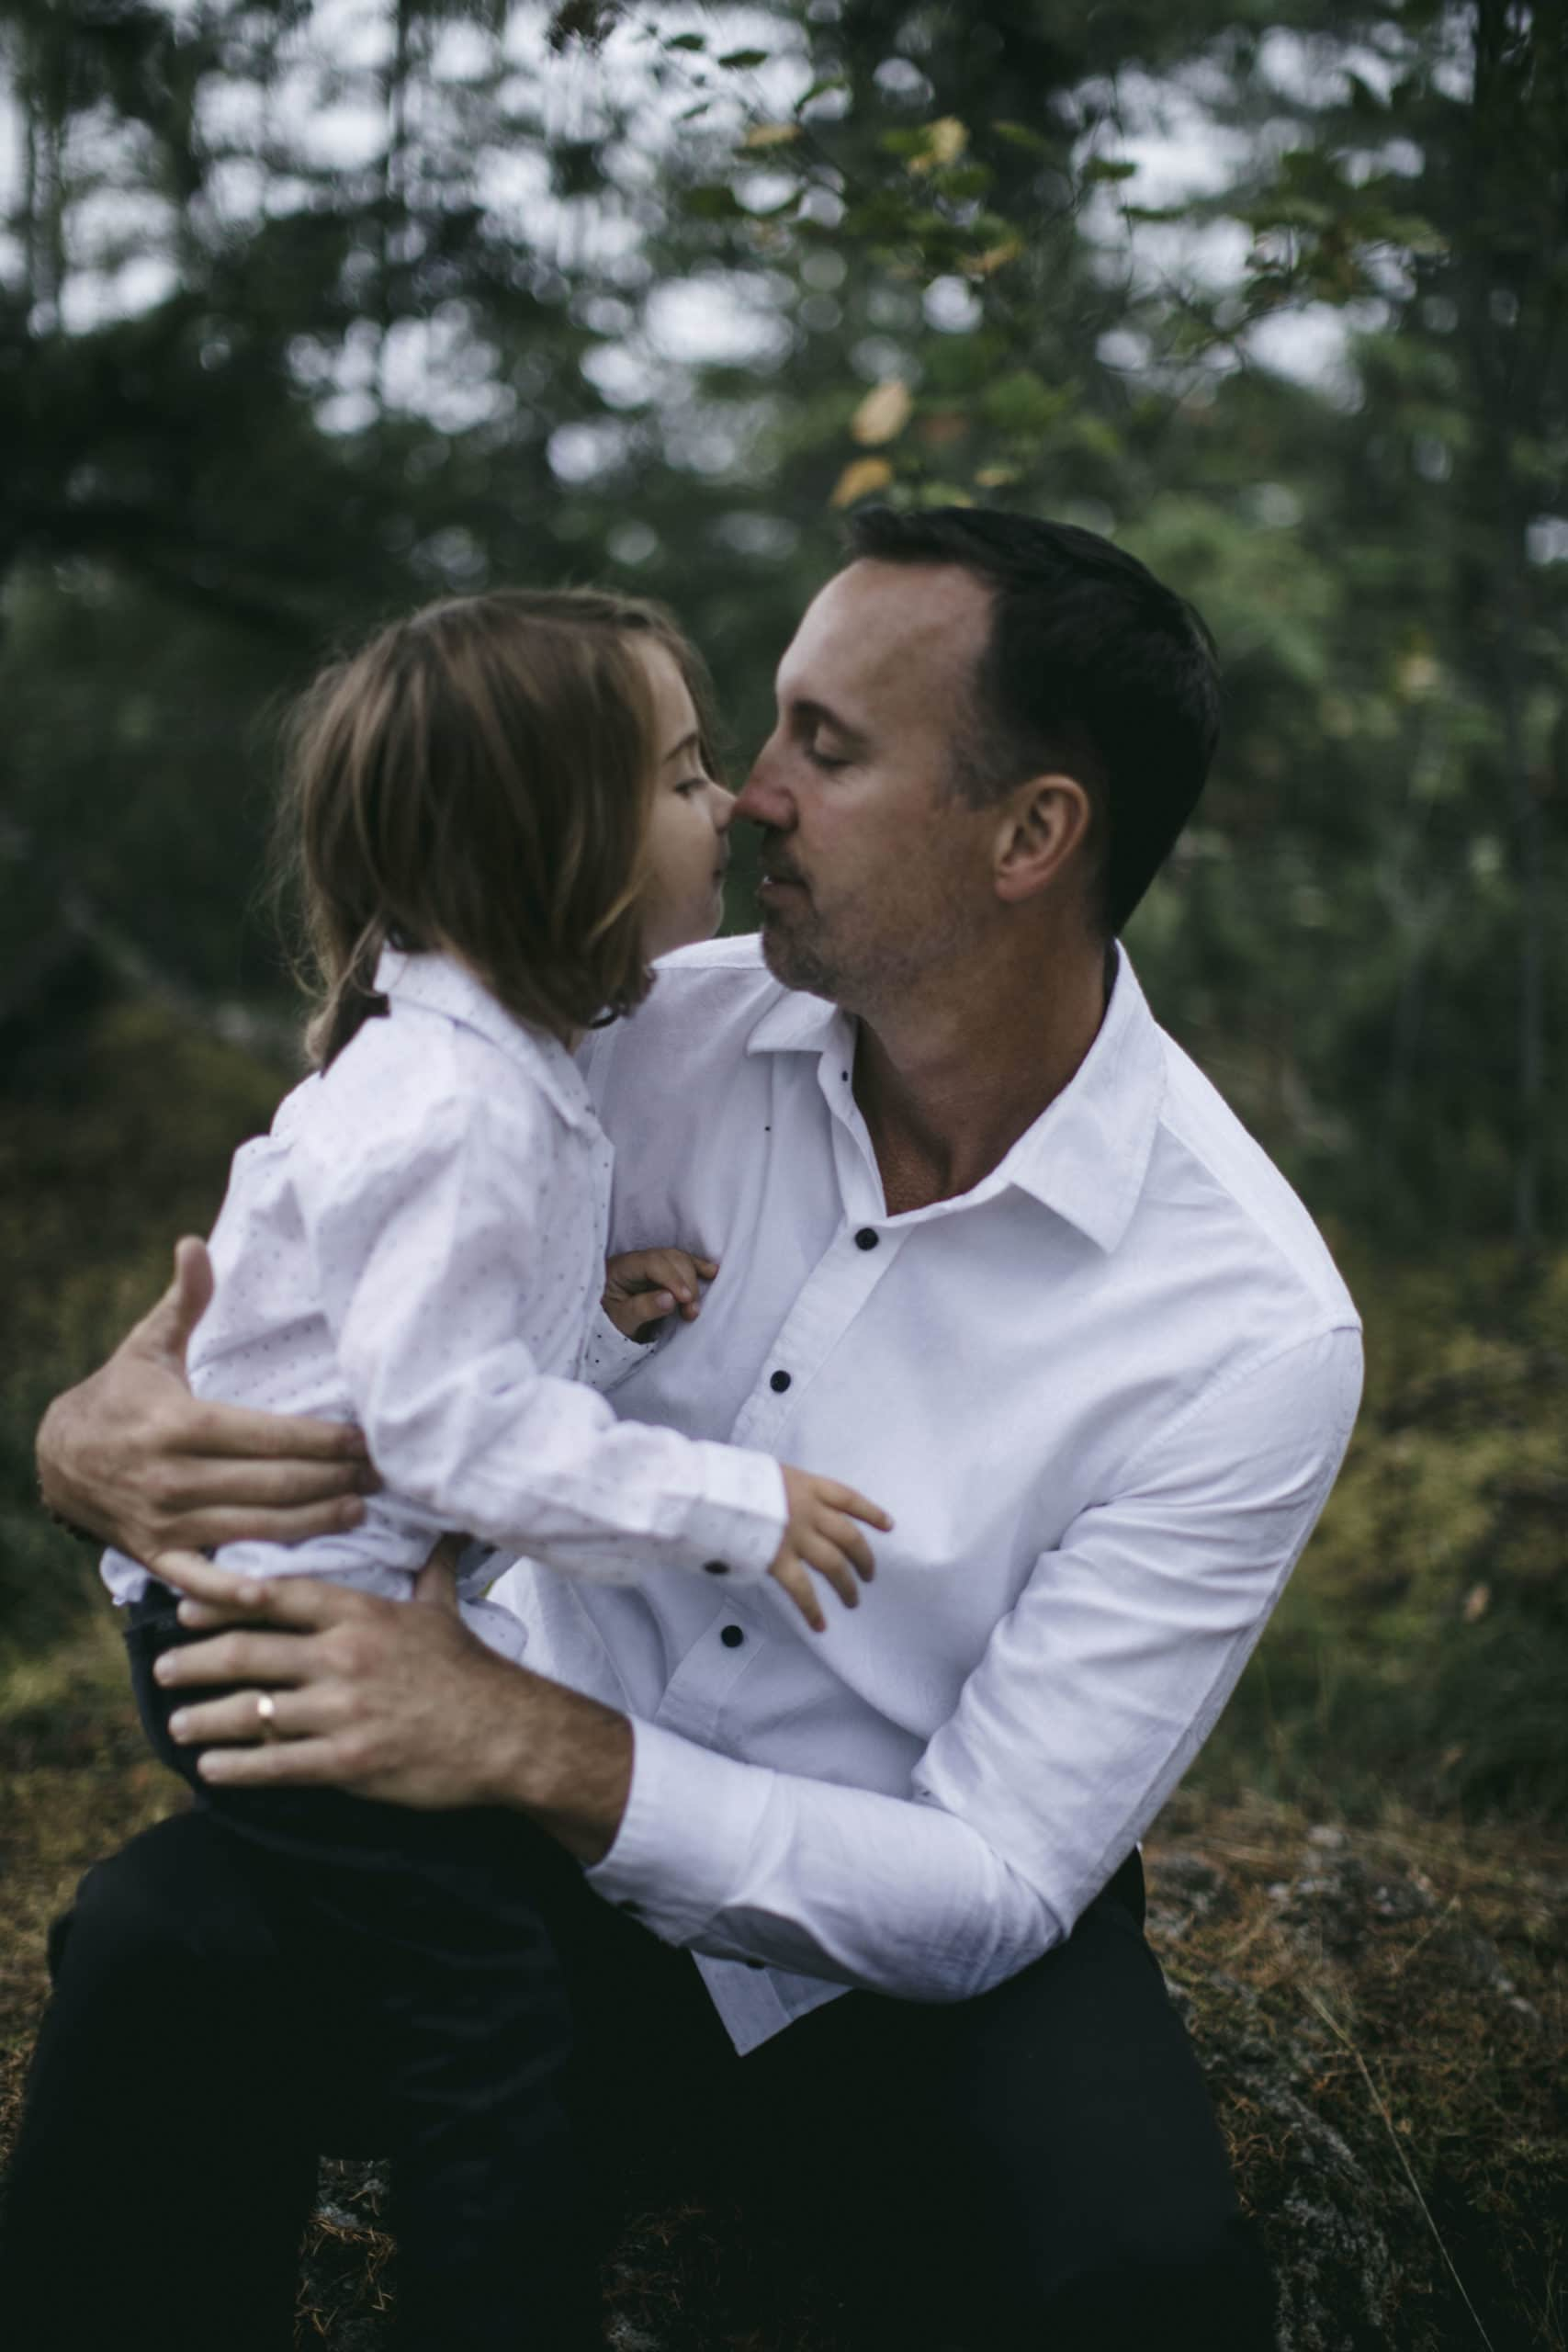 Eloping with children can be a beautiful experience.